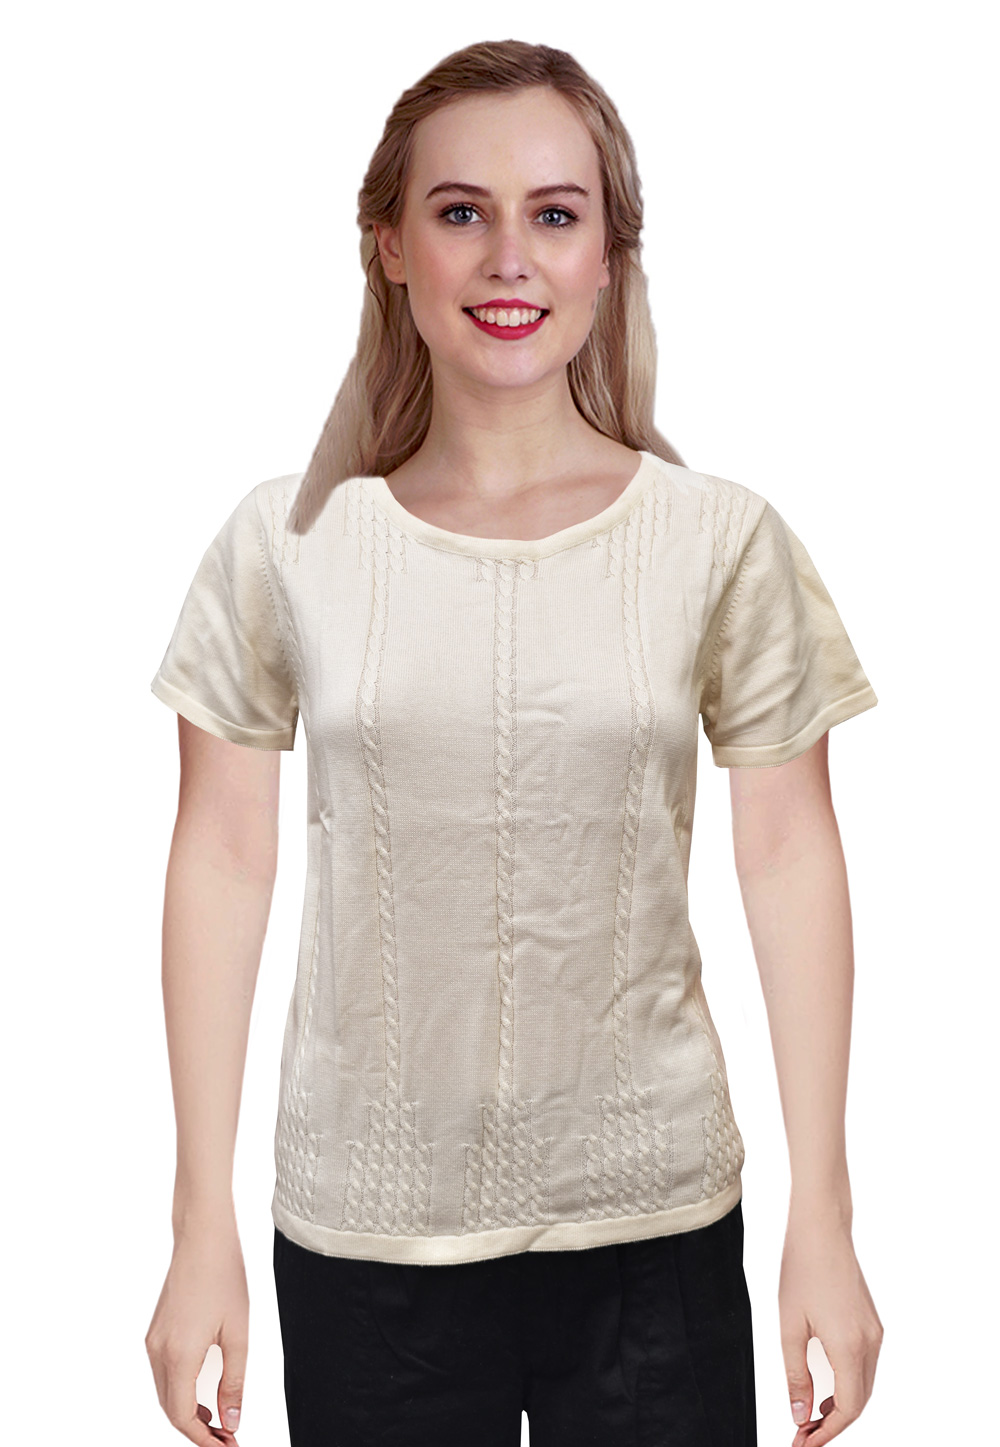 Off White Woolen Knitted Sweater Tops 214246